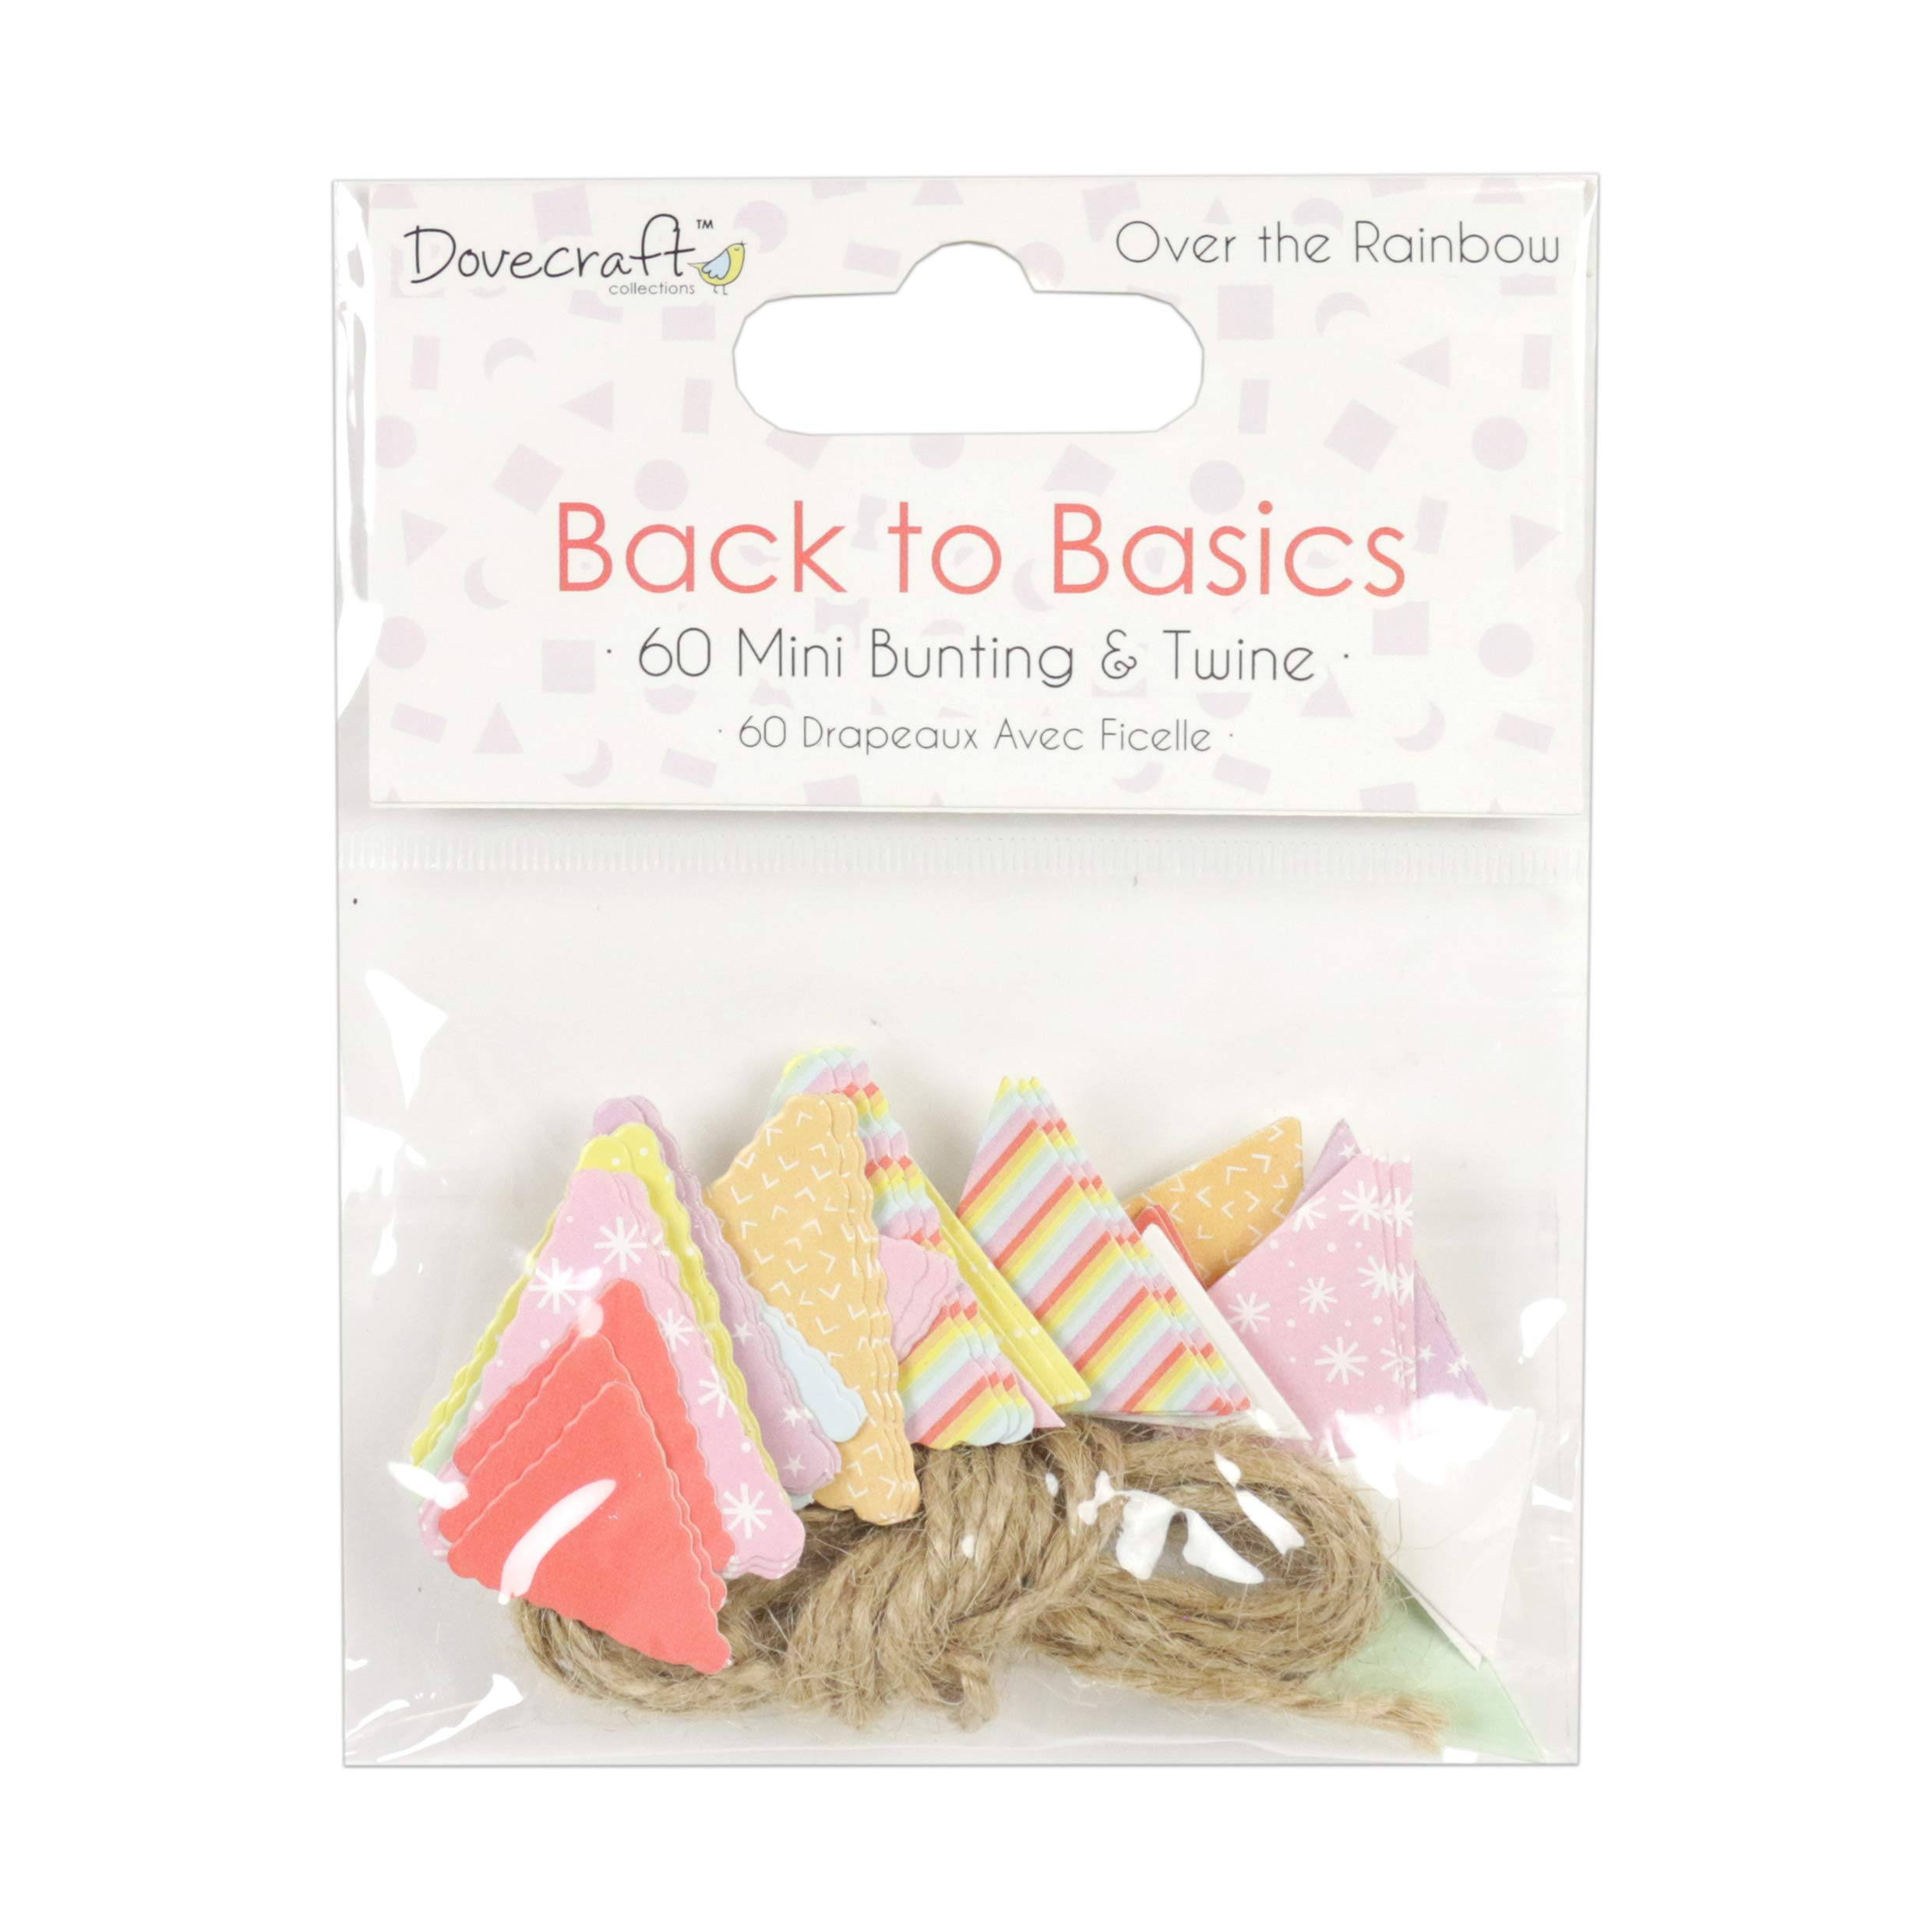 Dovecraft Back to Basics Over The Rainbow Mini Bunting and Twine, Multicolour, 1